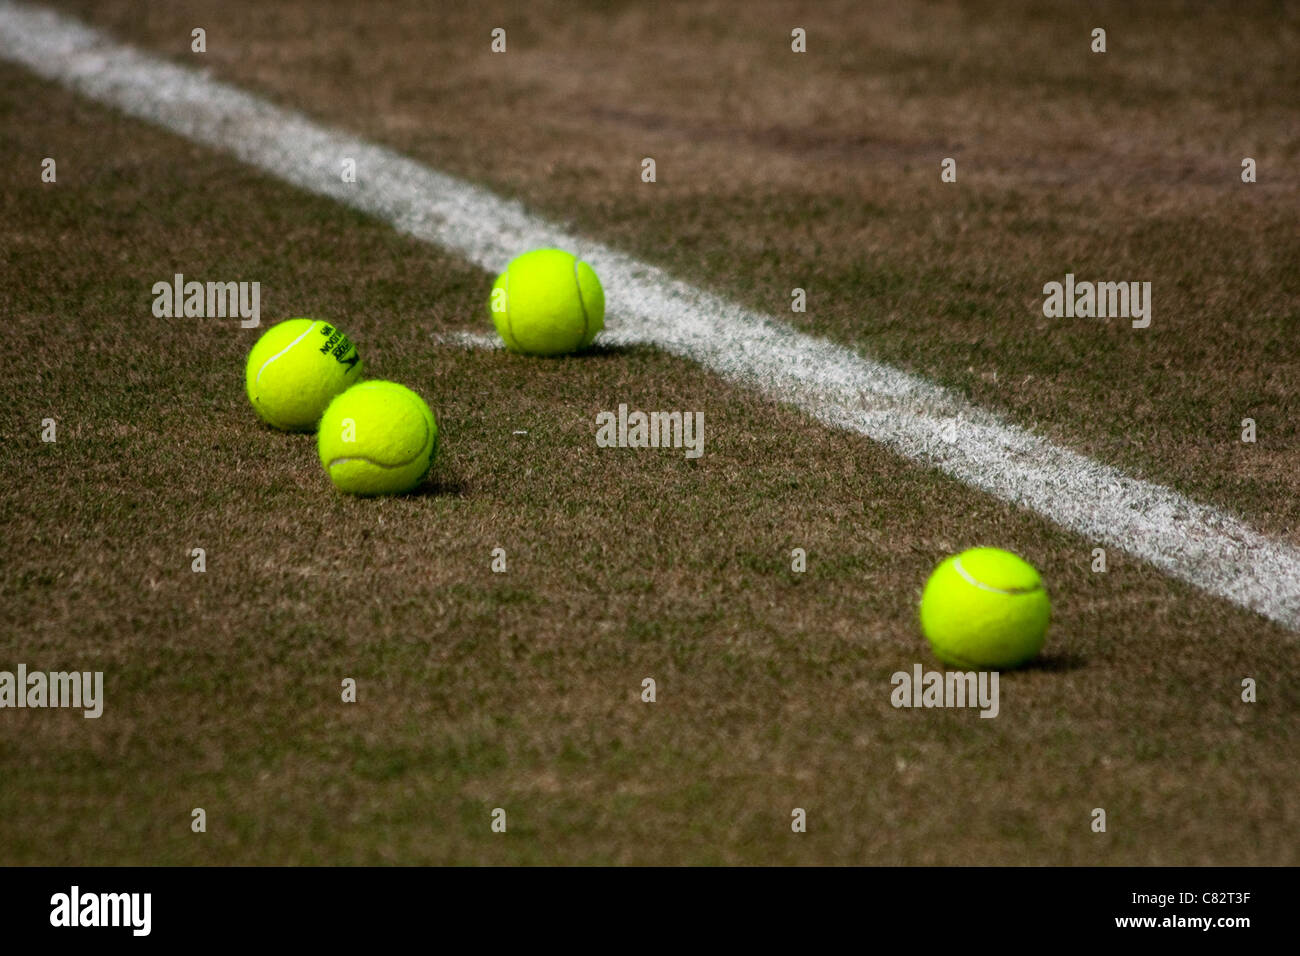 Wimbledon Tennis Balls on Court - Stock Image